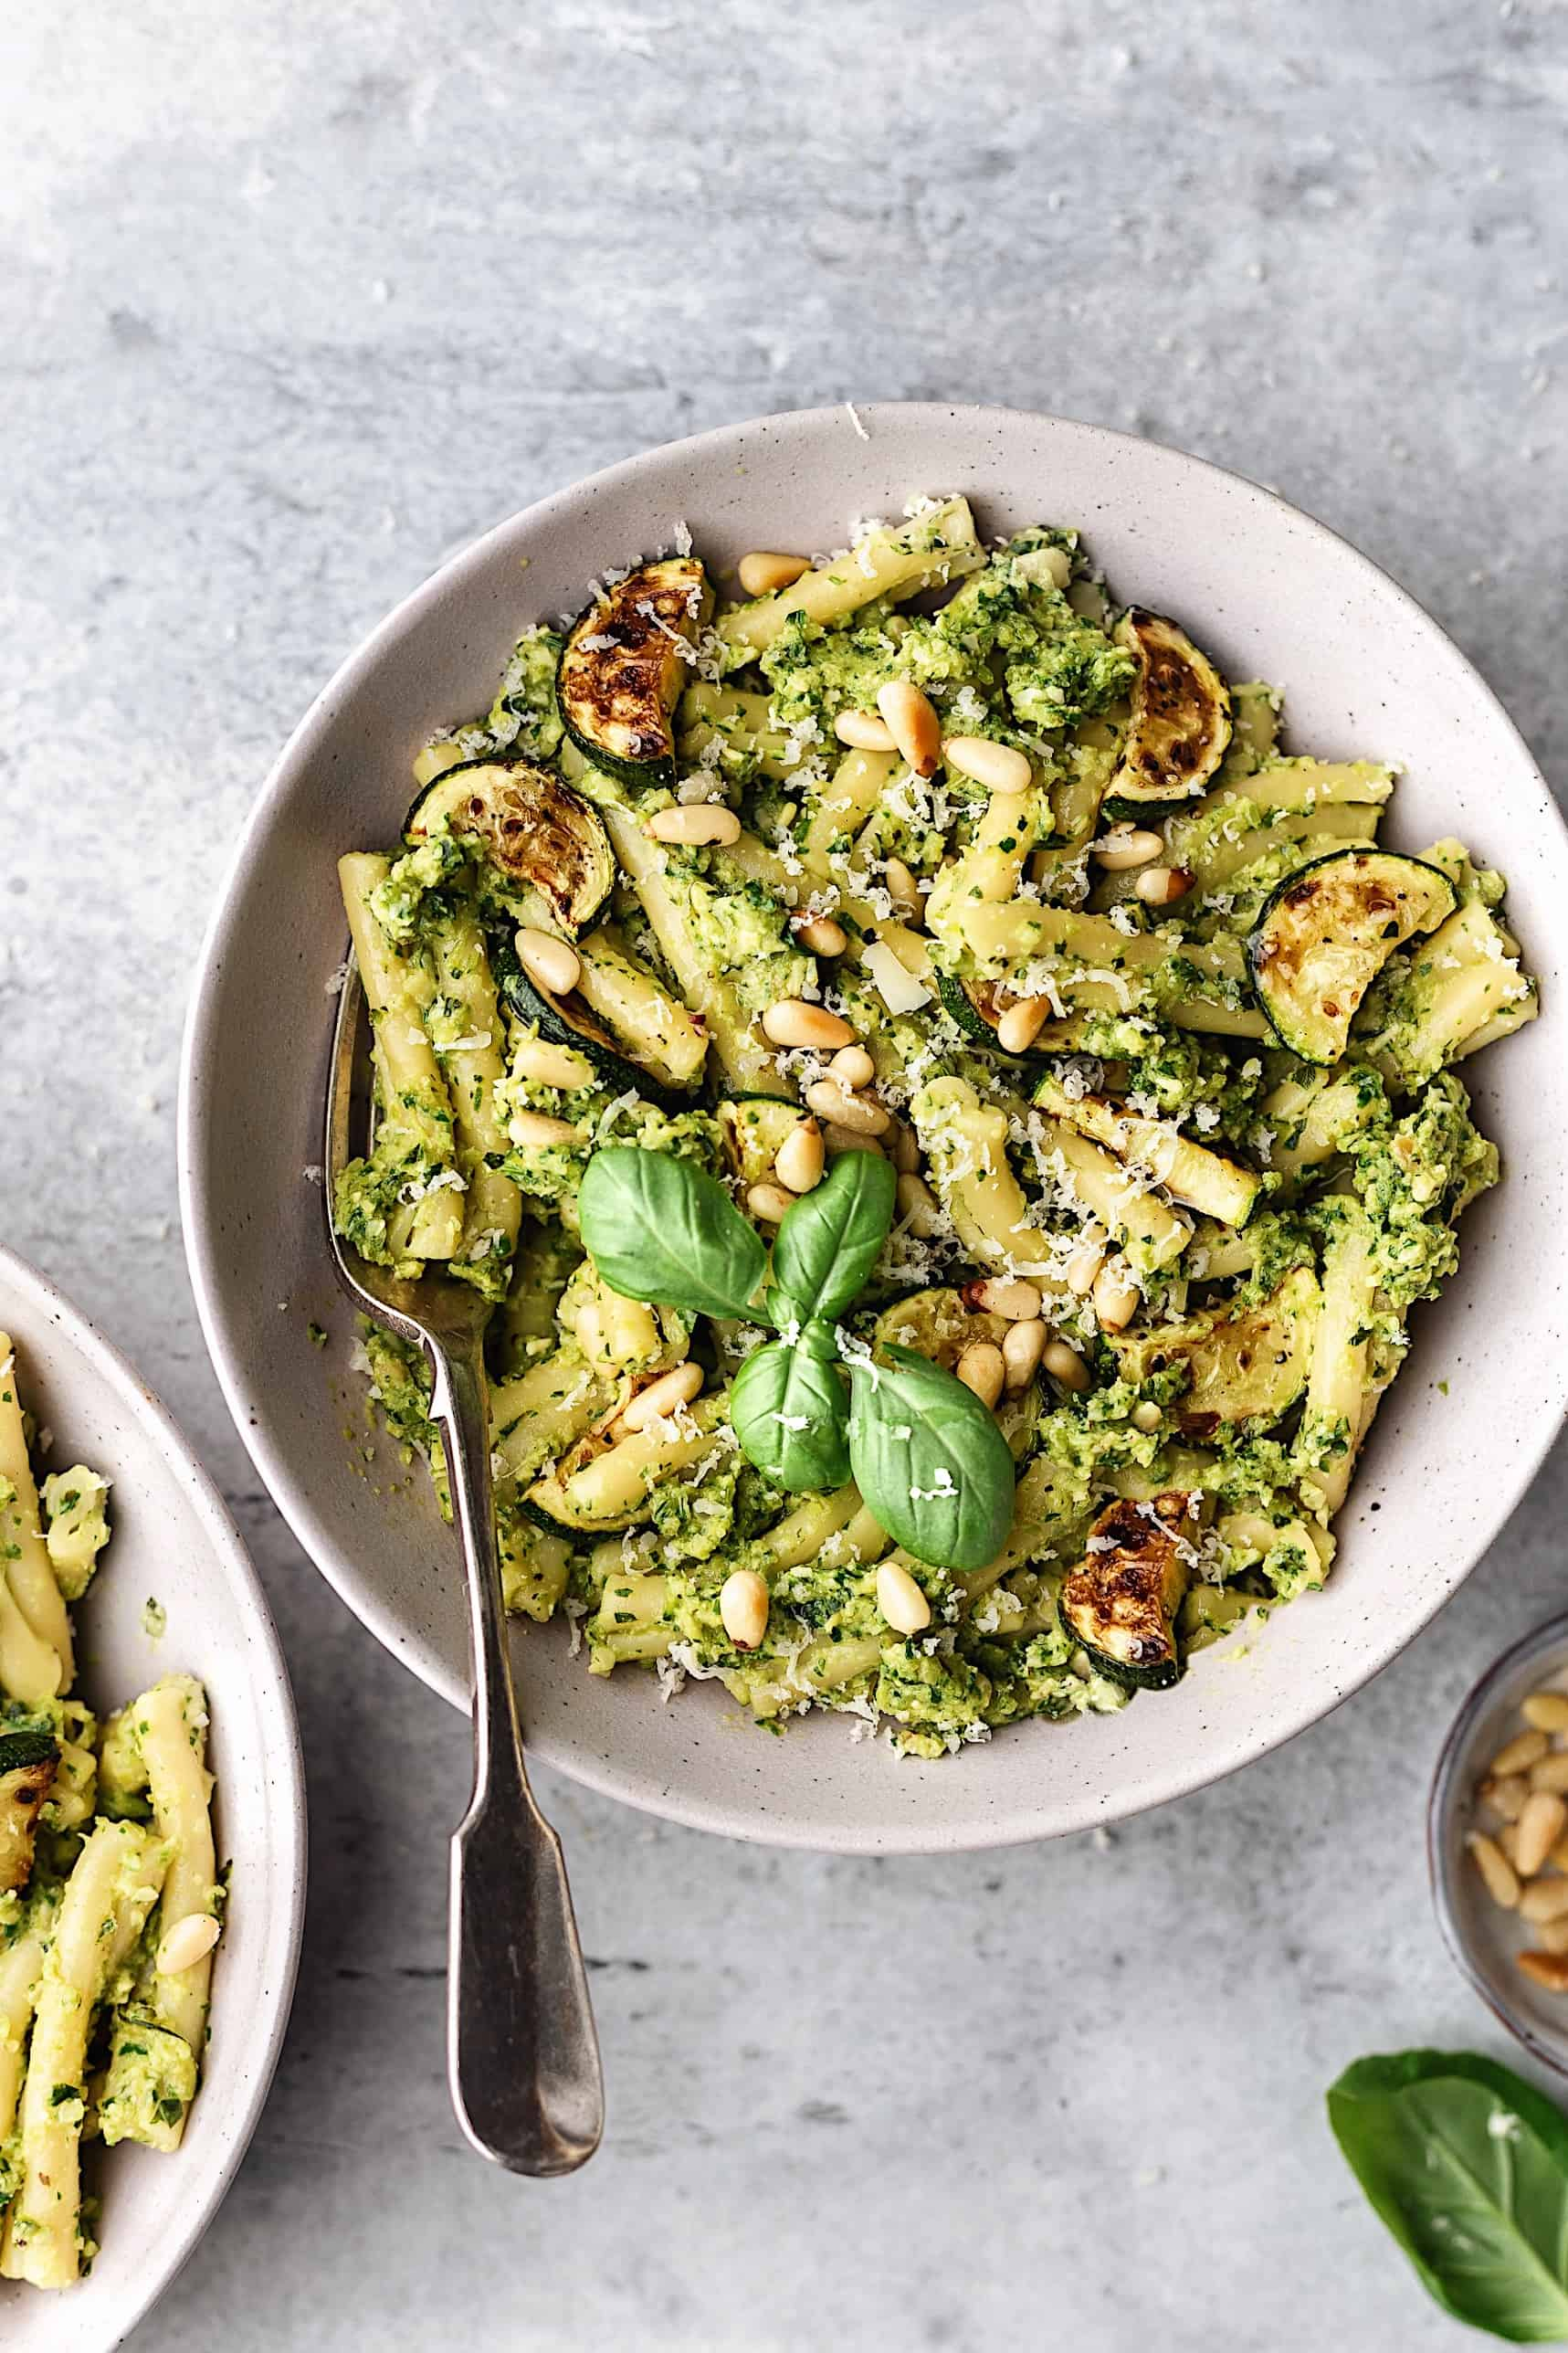 Vegan Roasted Courgette Pesto Pasta #vegan #recipe #pesto #pasta #courgette #zucchini